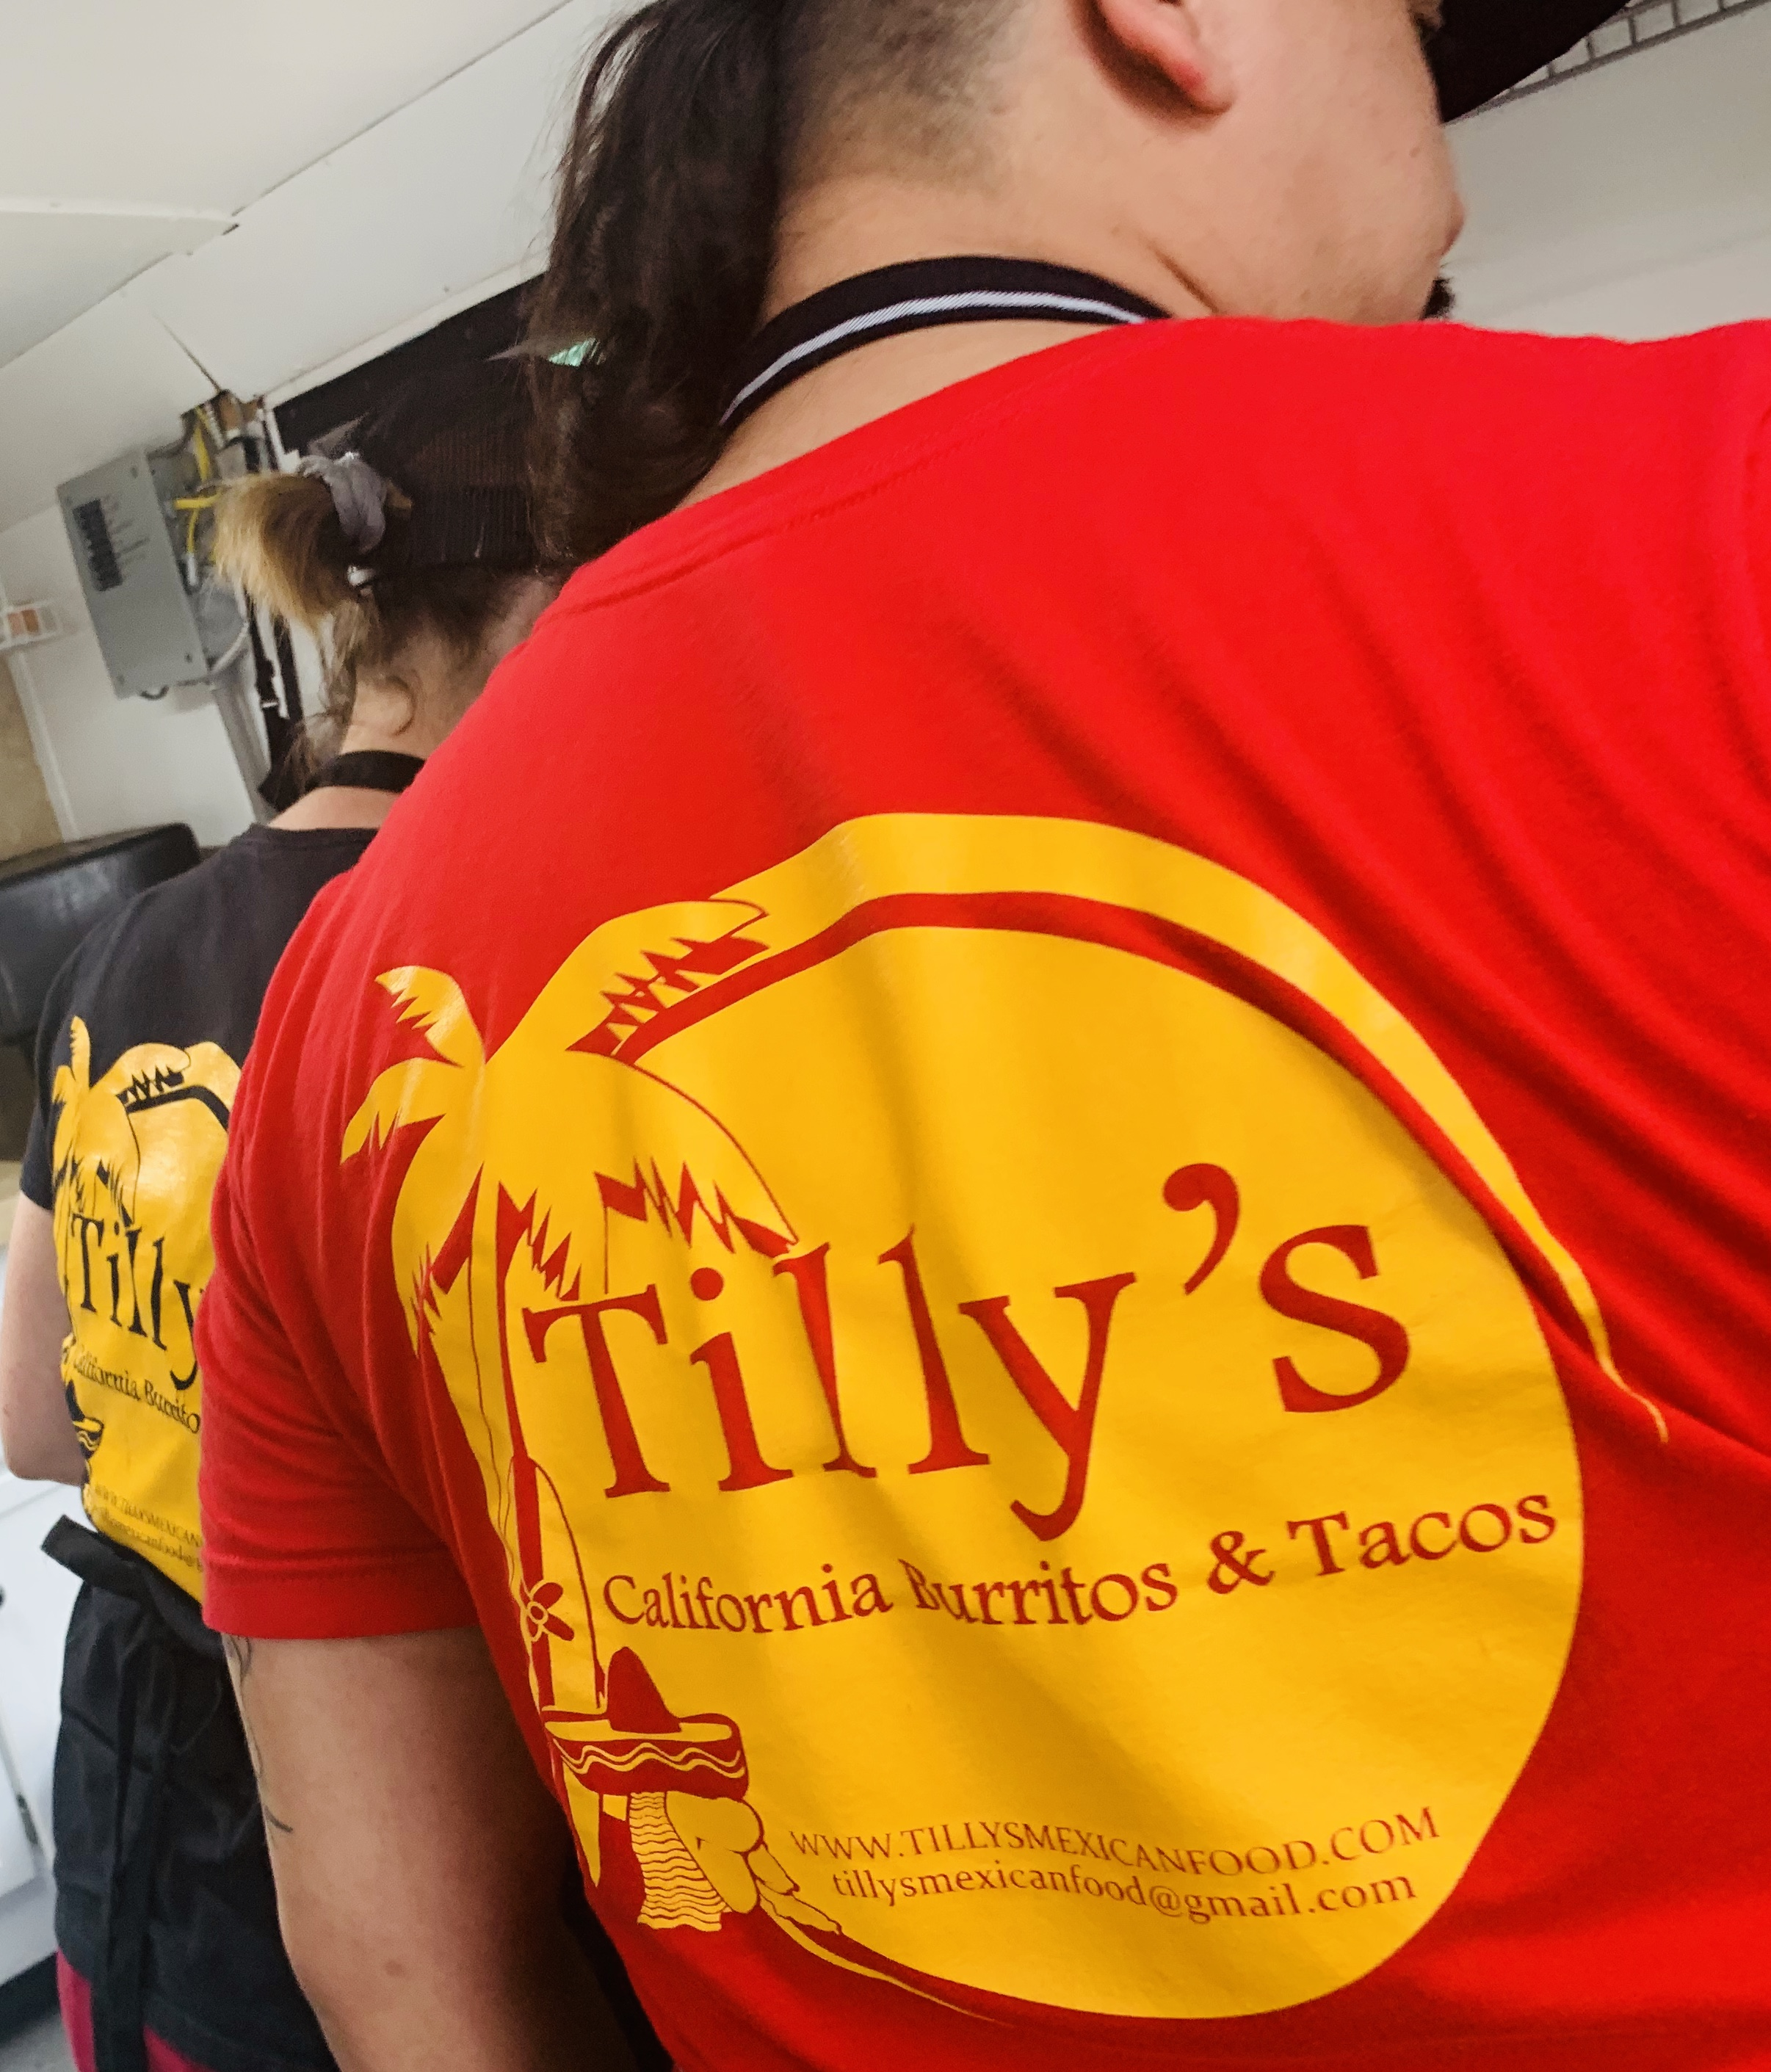 Team Tilly's